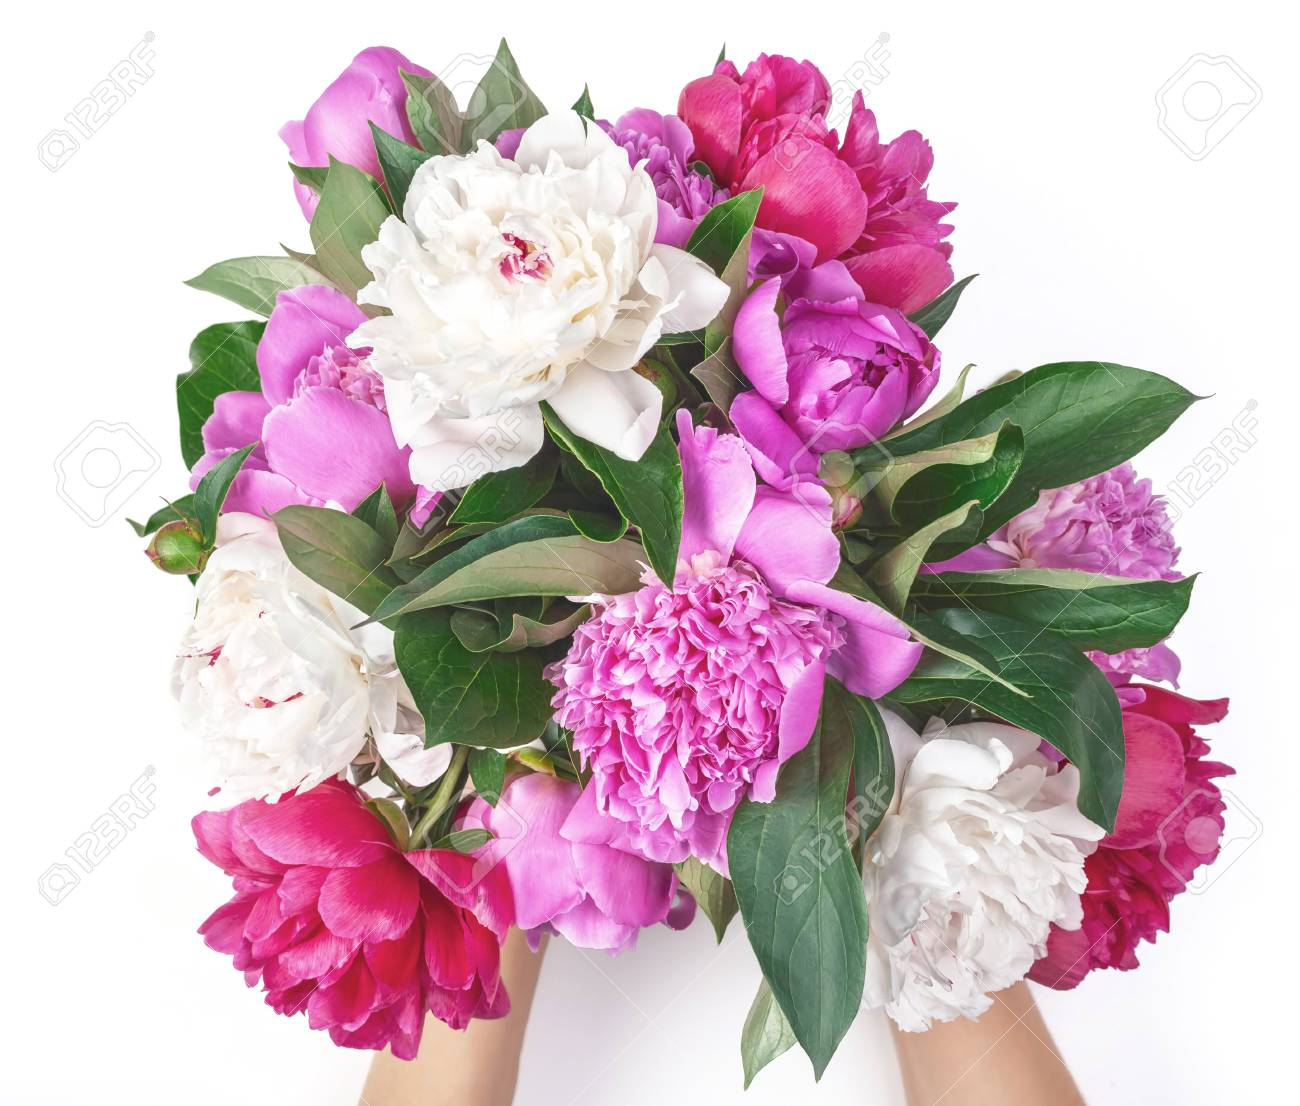 Bouquet of pink and white peony flowers in woman's hand isolated on white background. Top view. Flat lay. - 106762583